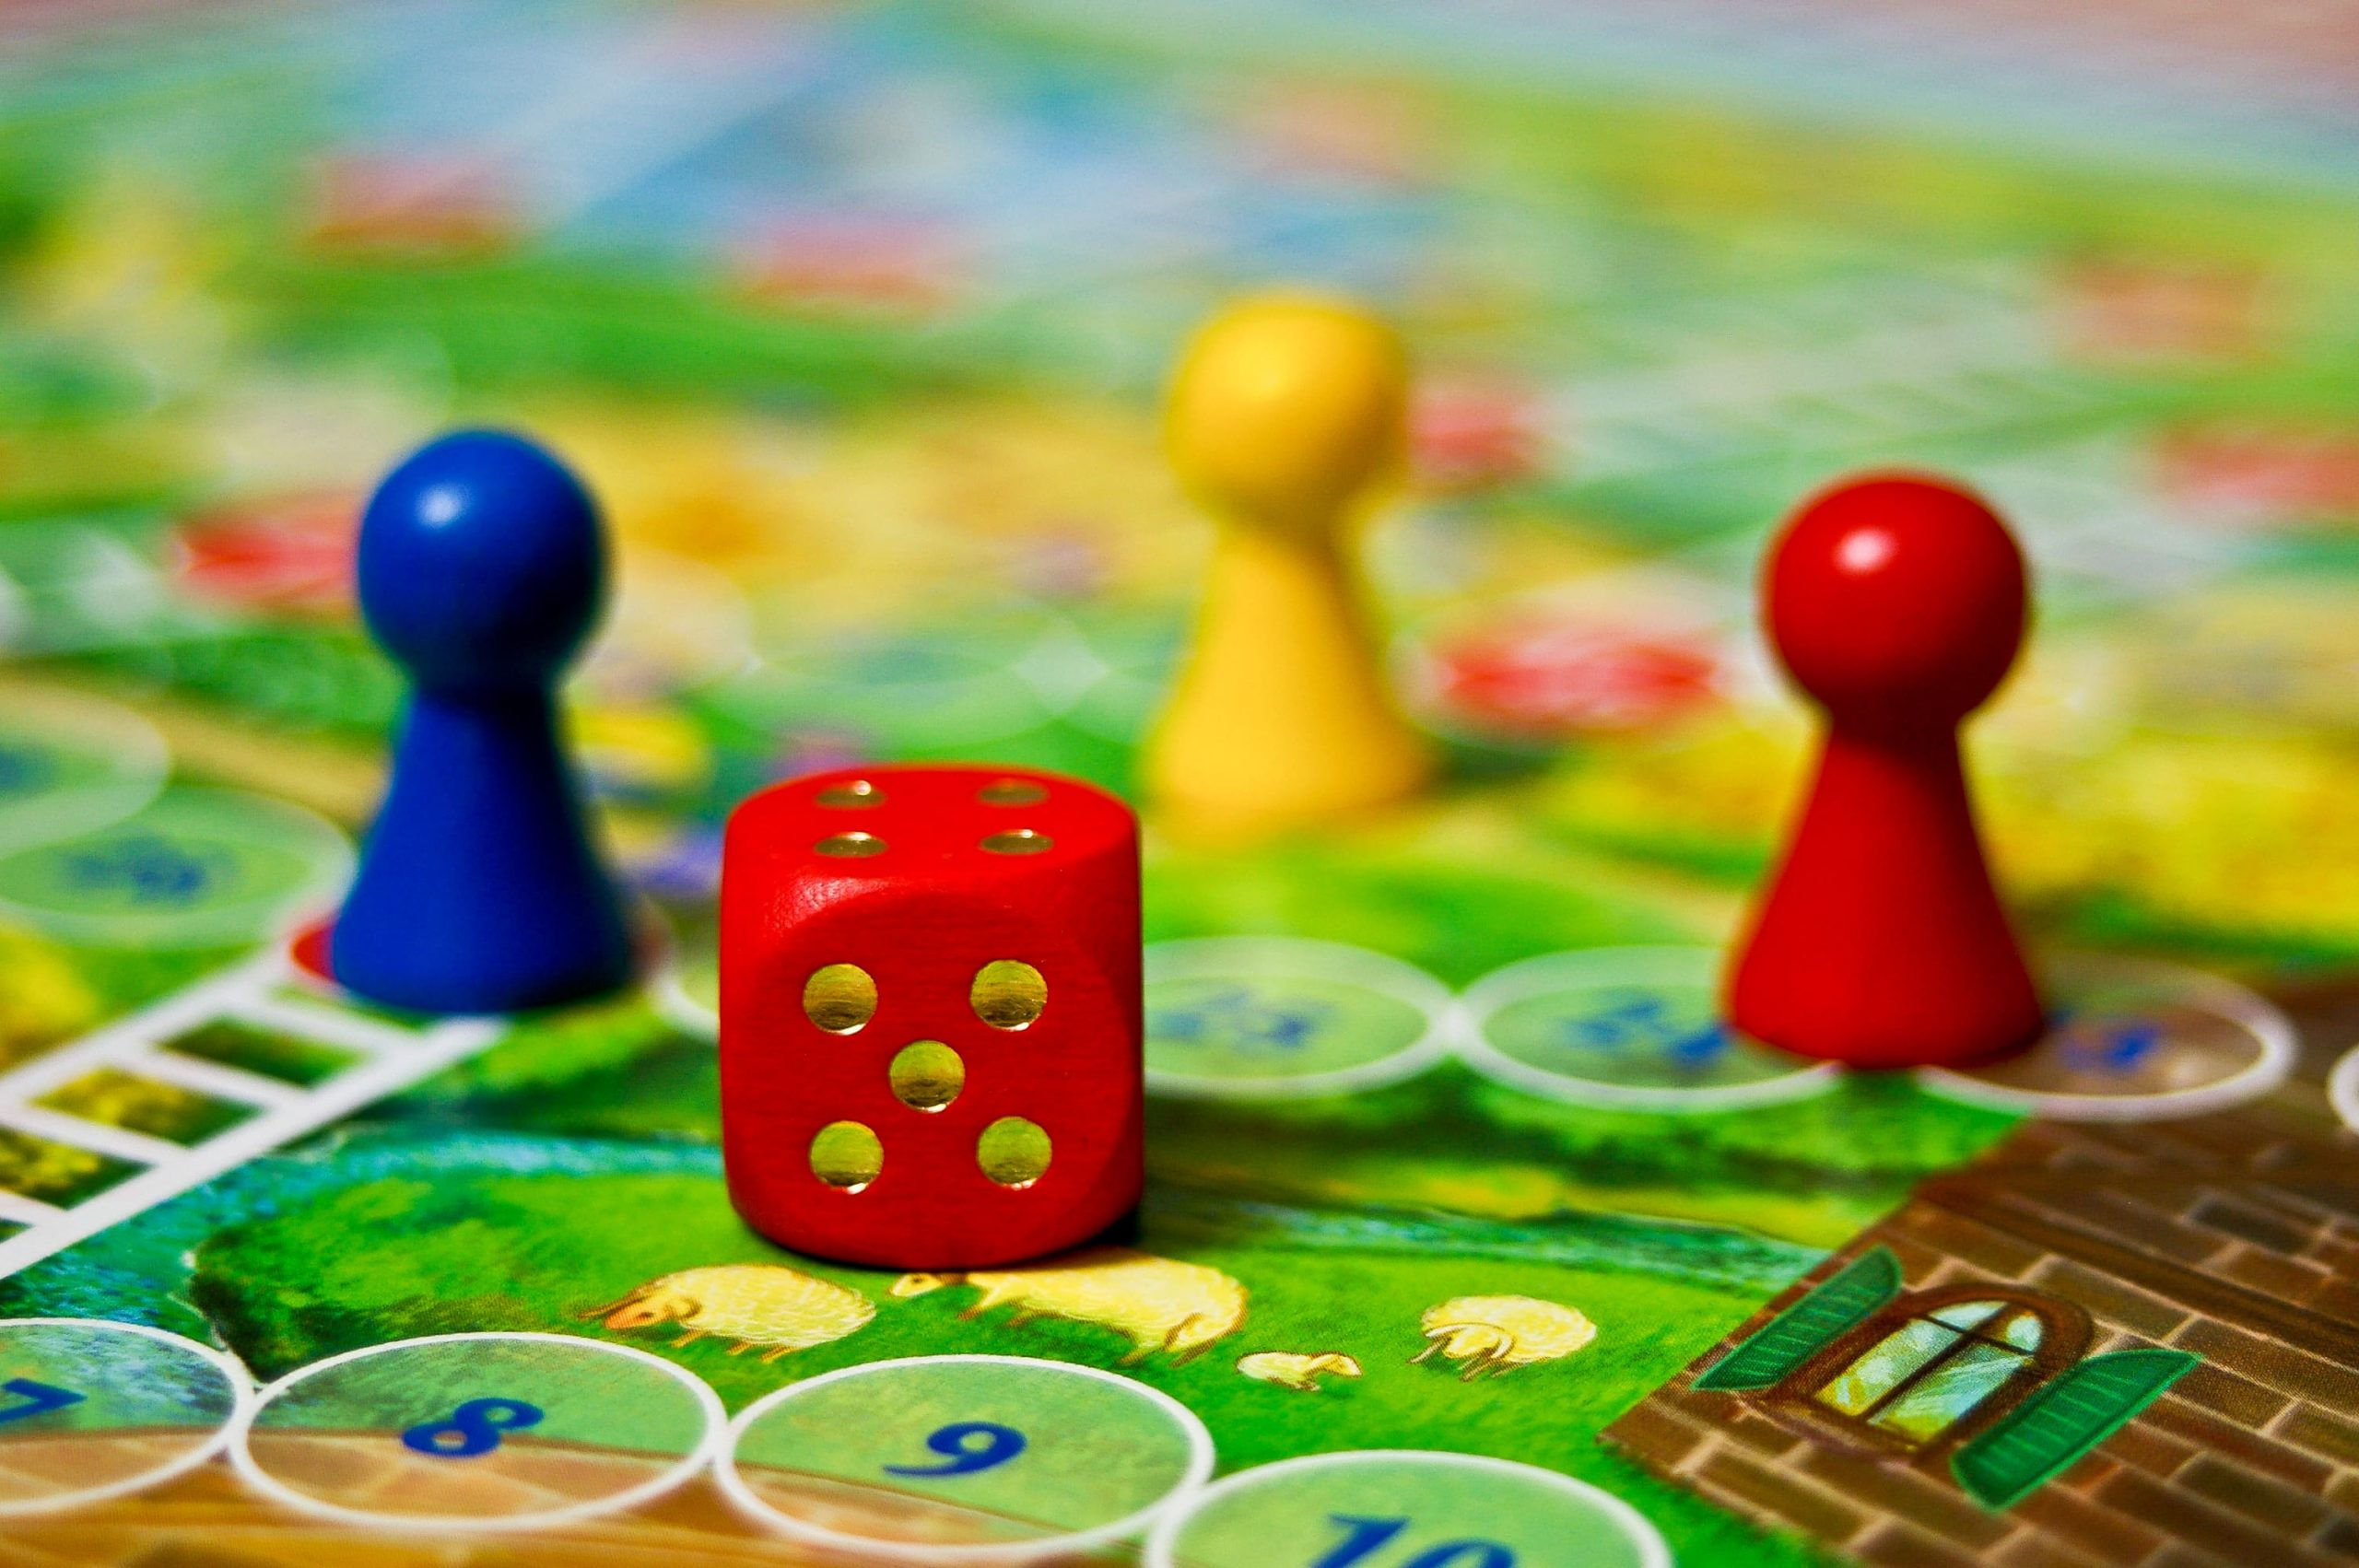 Board Game Arena games